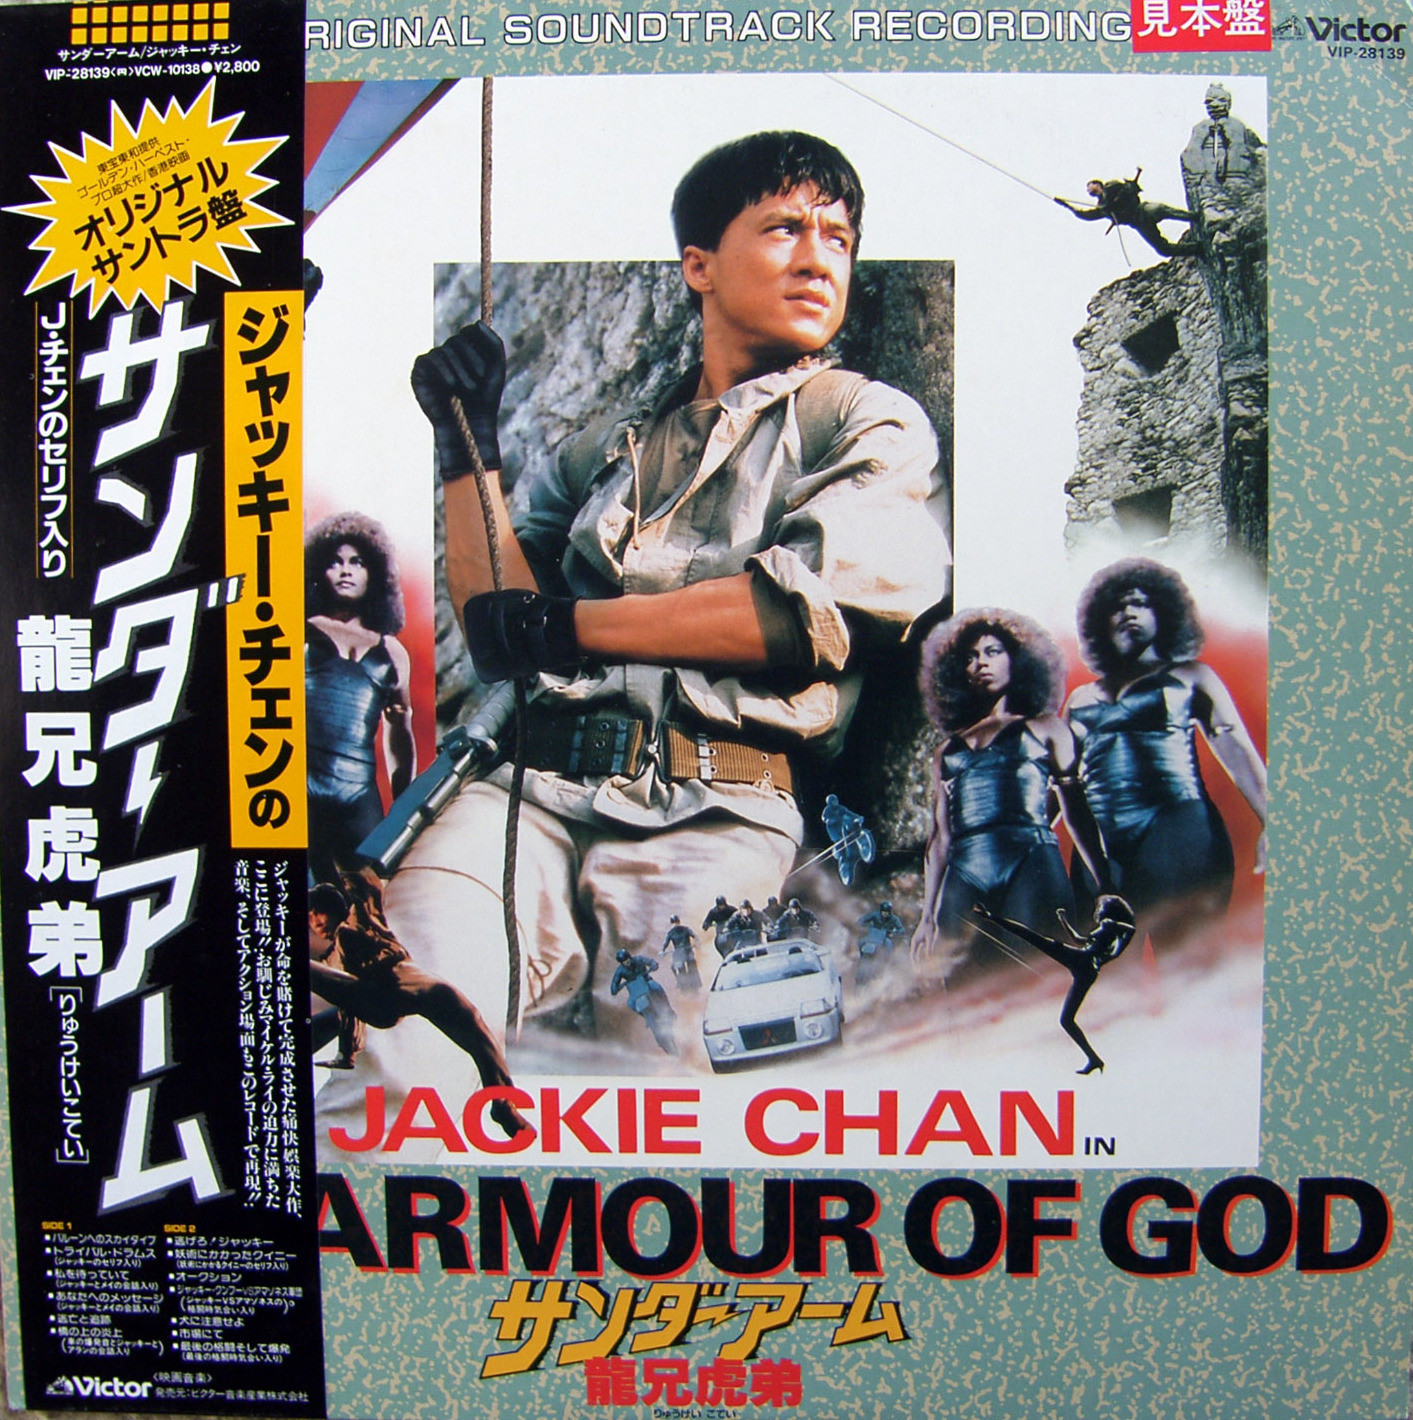 film music site the armour of god soundtrack michael lai